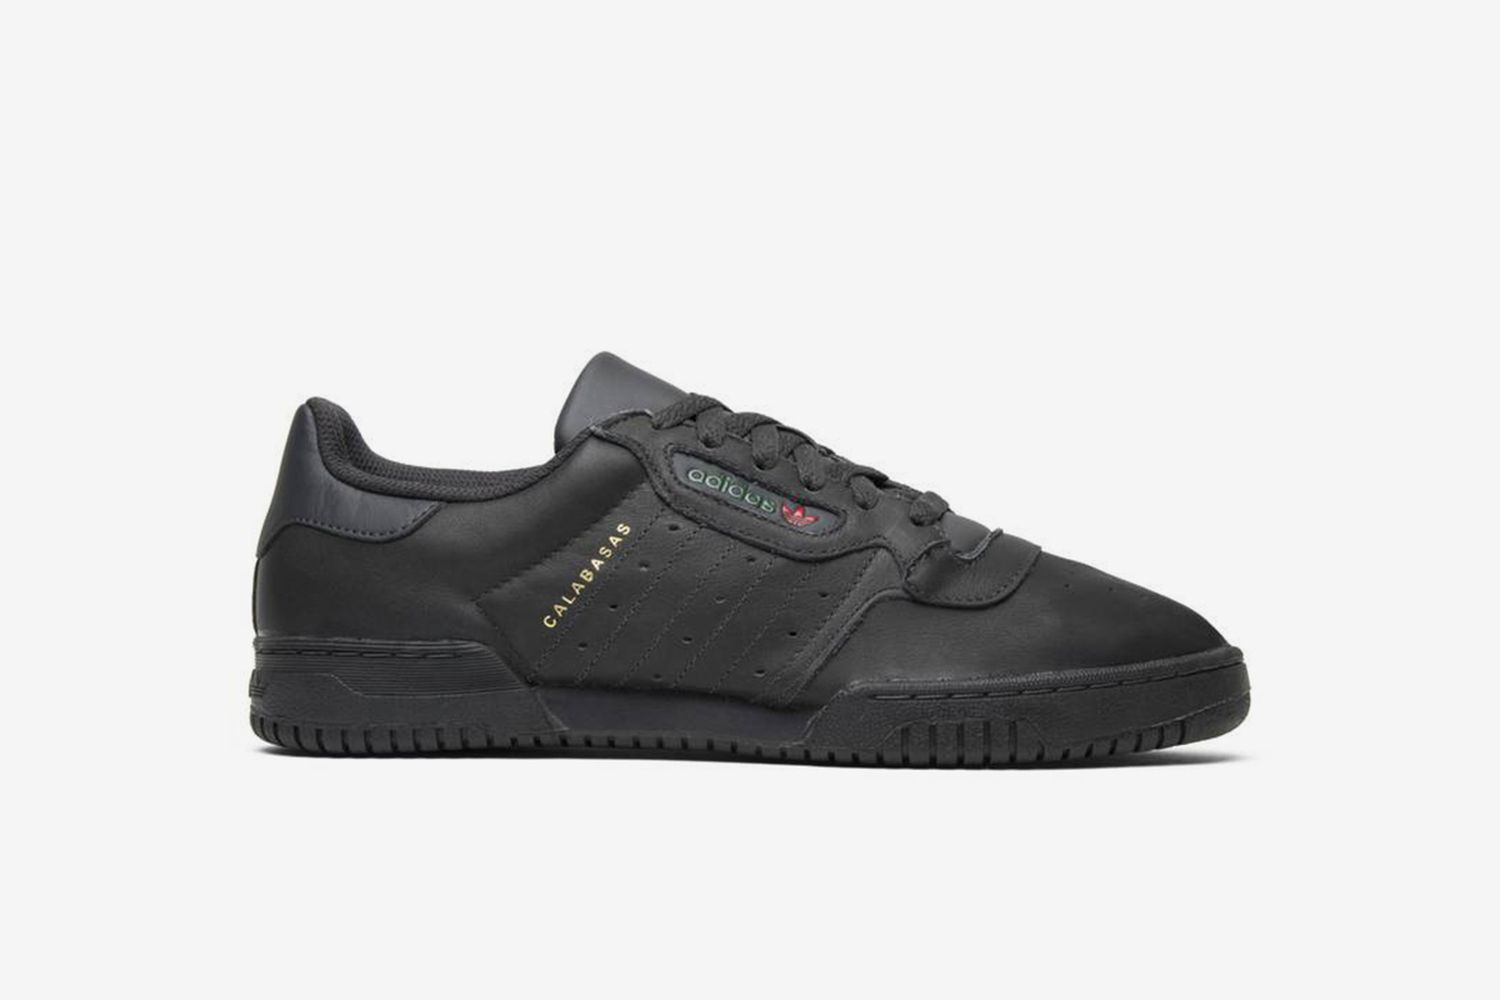 YEEZY Powerphase Calabasas 'Core Black'